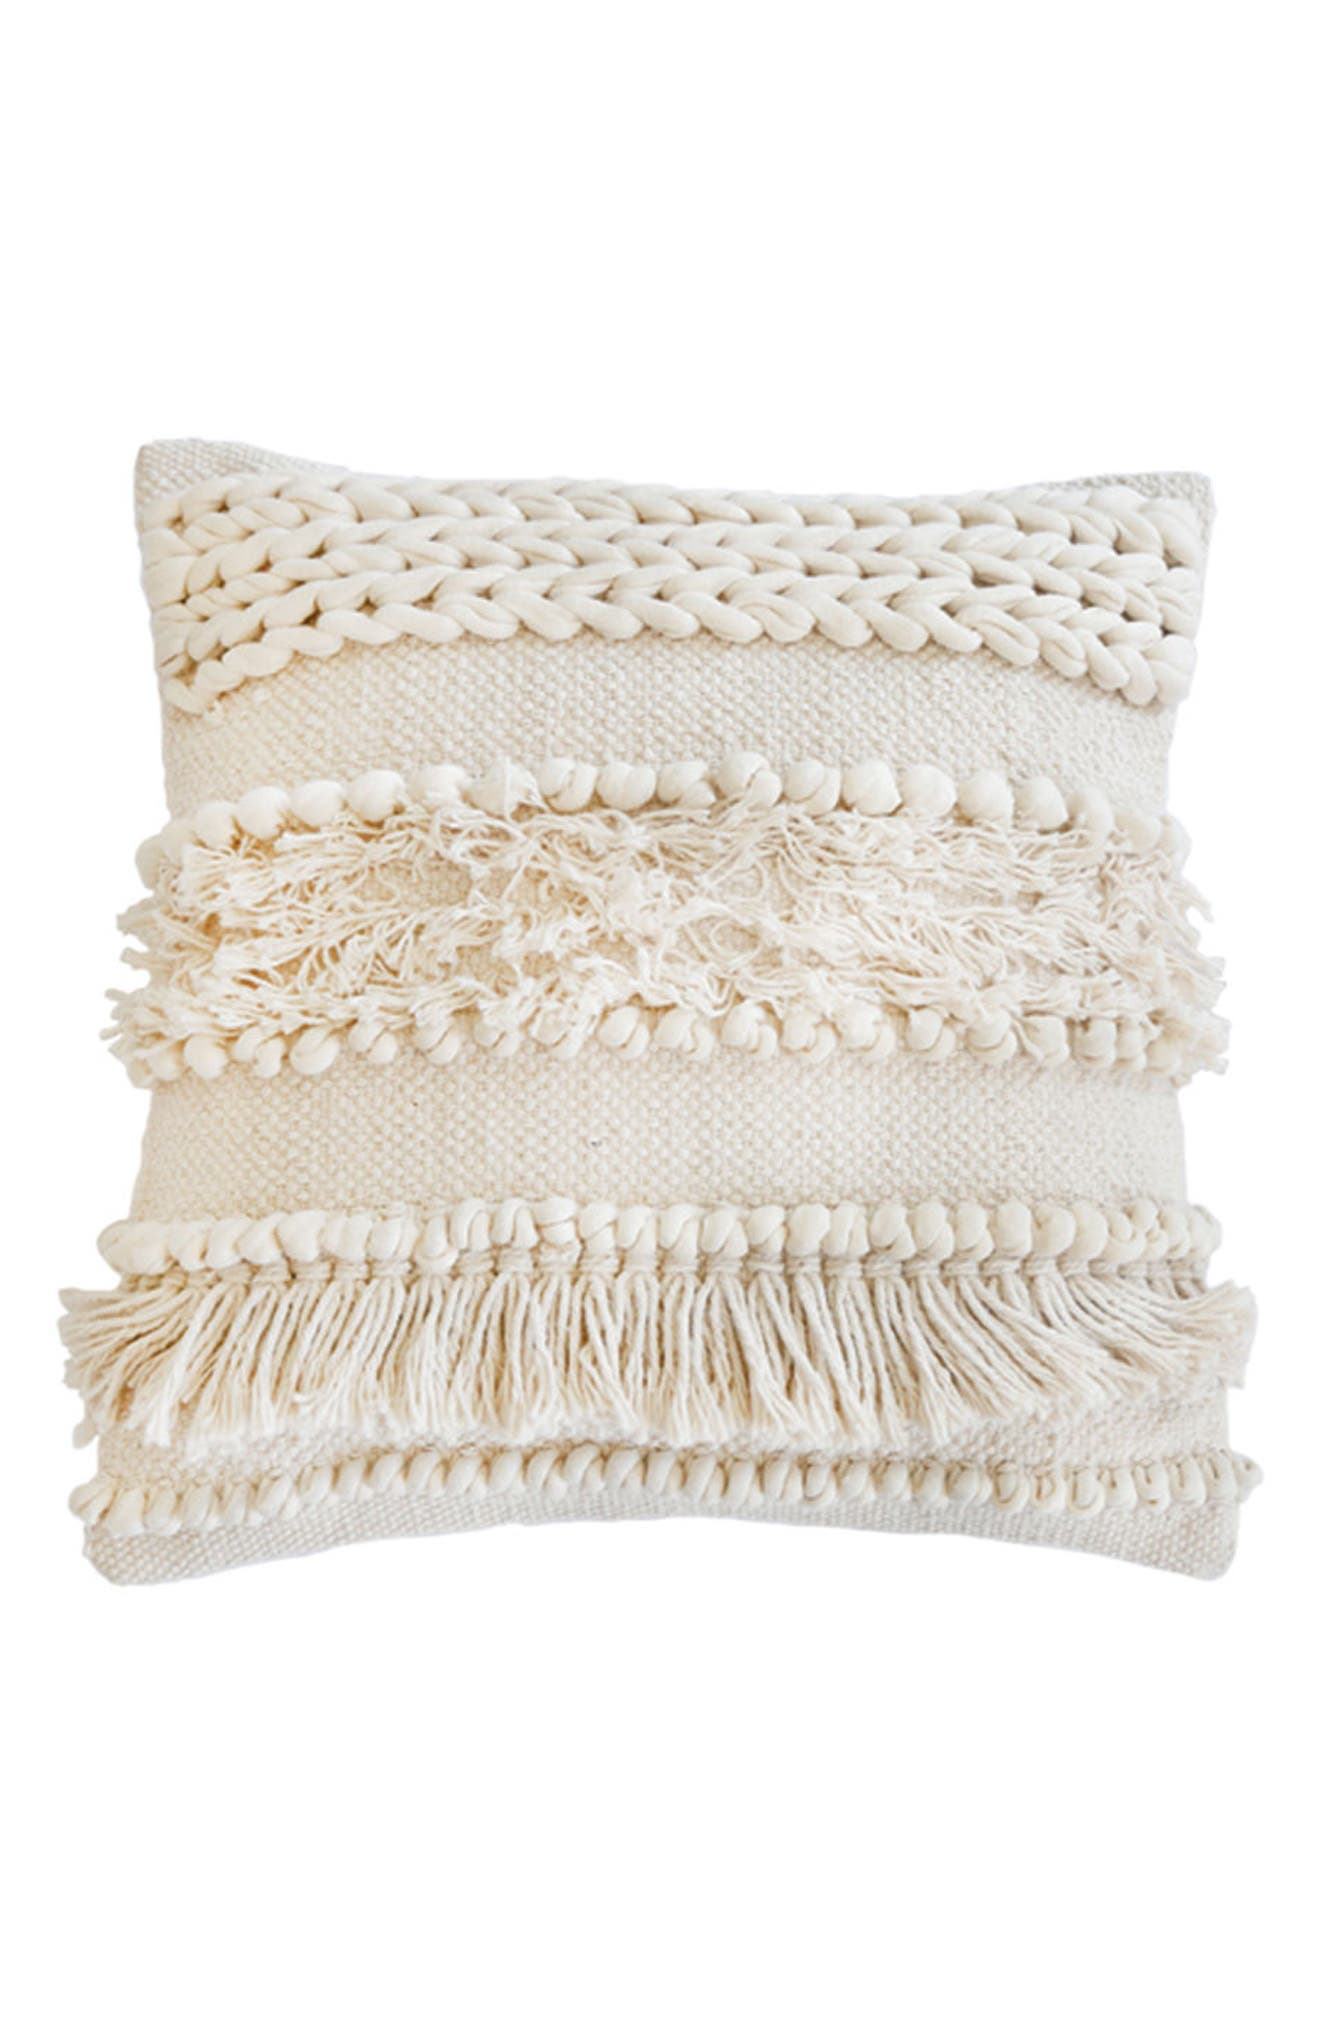 POM POM AT HOME Iman Accent Pillow, Main, color, IVORY